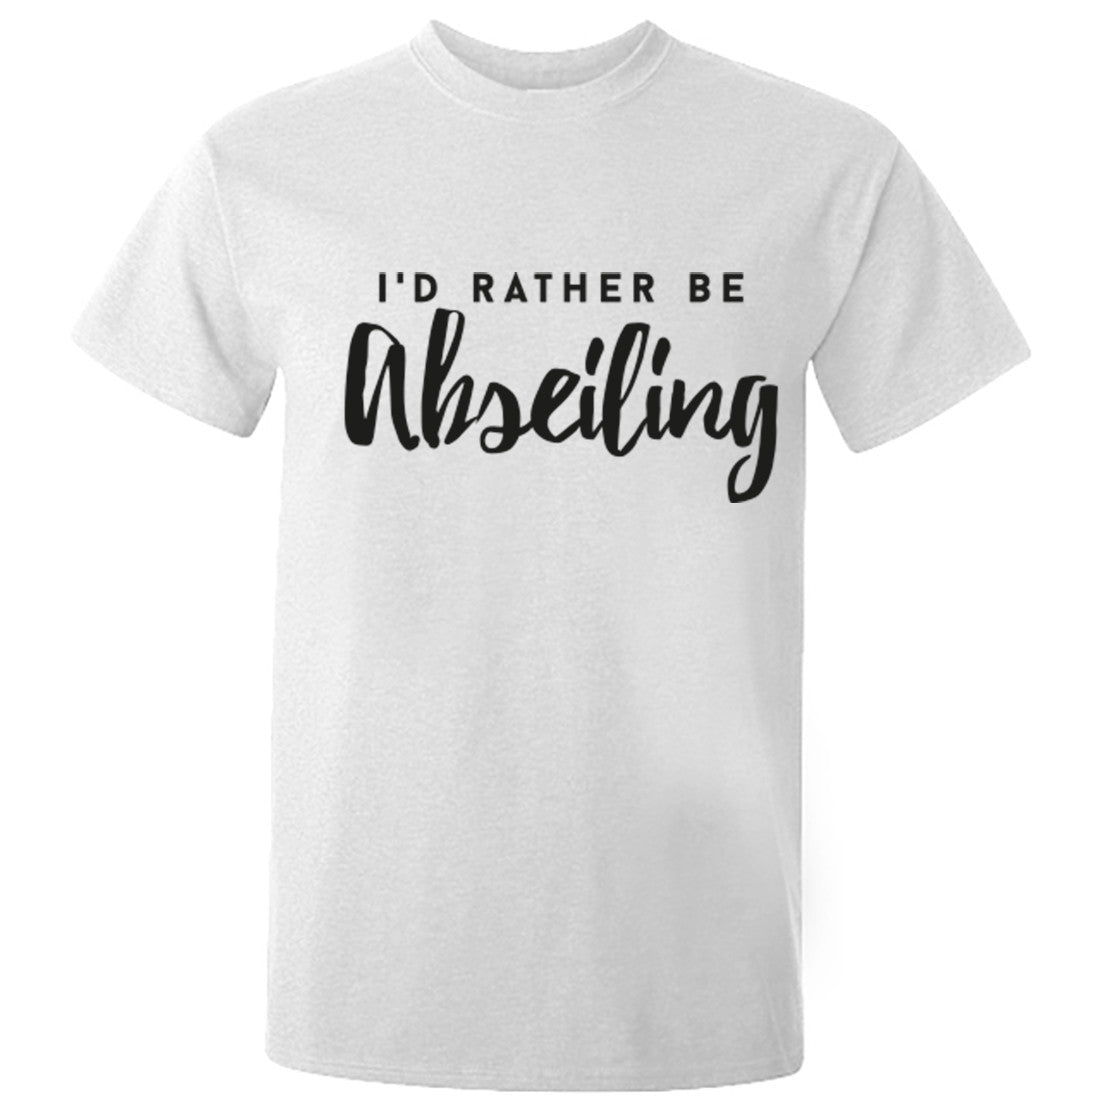 I'd Rather Be Abseiling unisex t-shirt K0213 - Illustrated Identity Ltd.